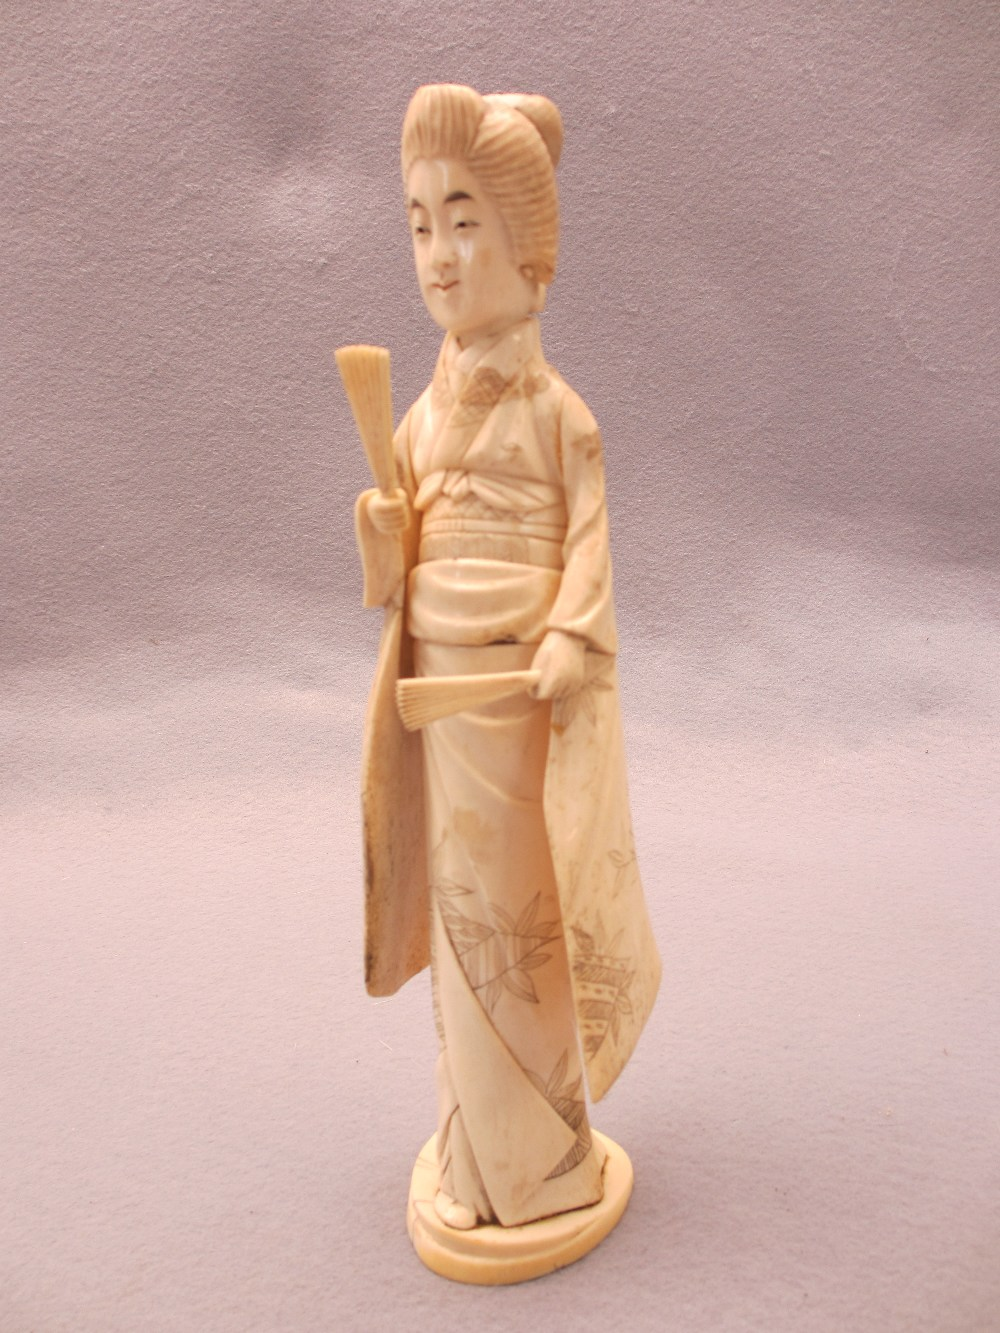 JAPANESE & OTHER IVORY & BONE OKIMONO, FOUR ITEMS - a standing sectional figurine of a Geisha girl - Image 2 of 5